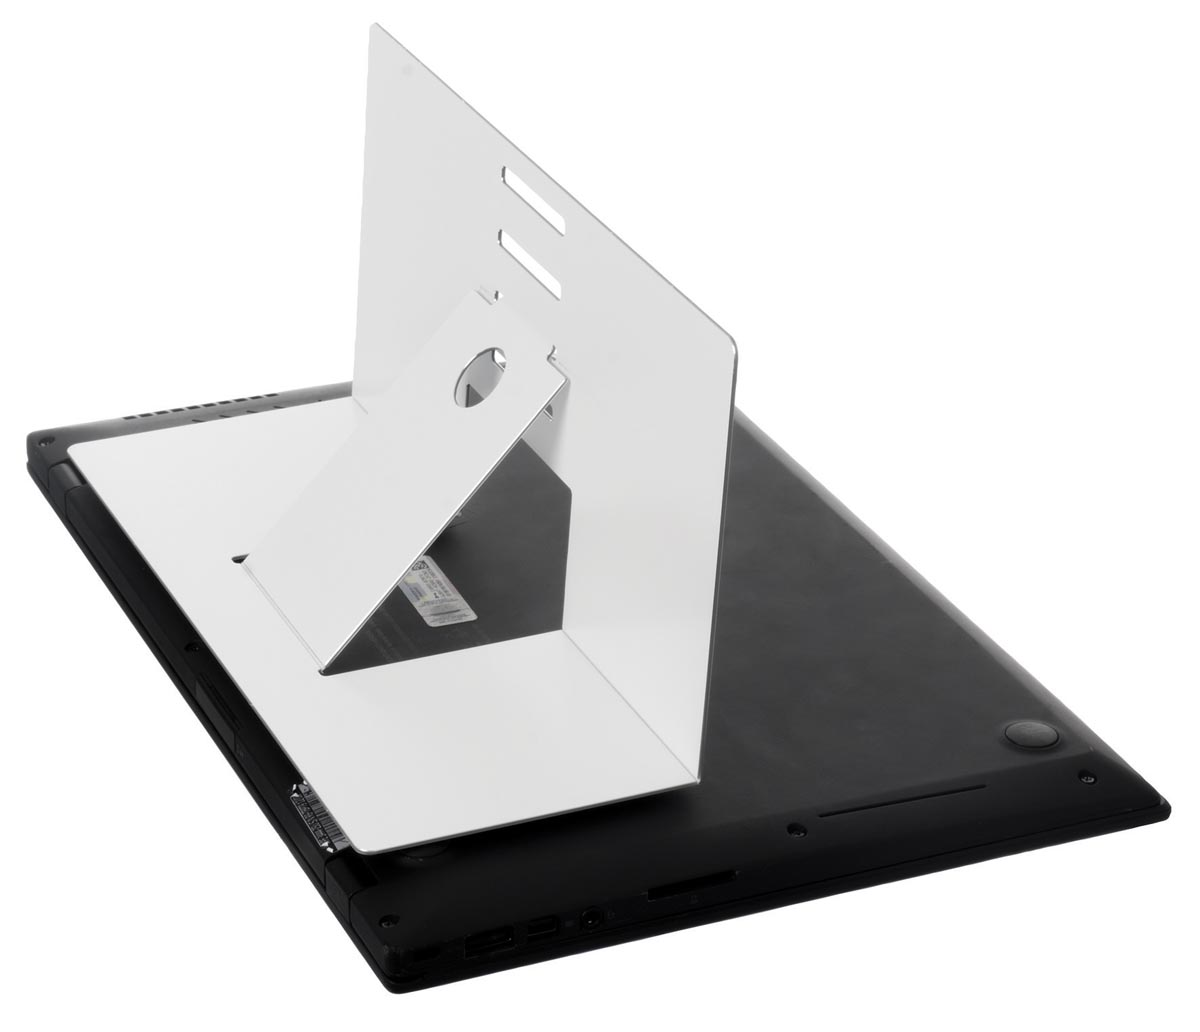 R-Go Riser Attachable laptopstandaad, wit